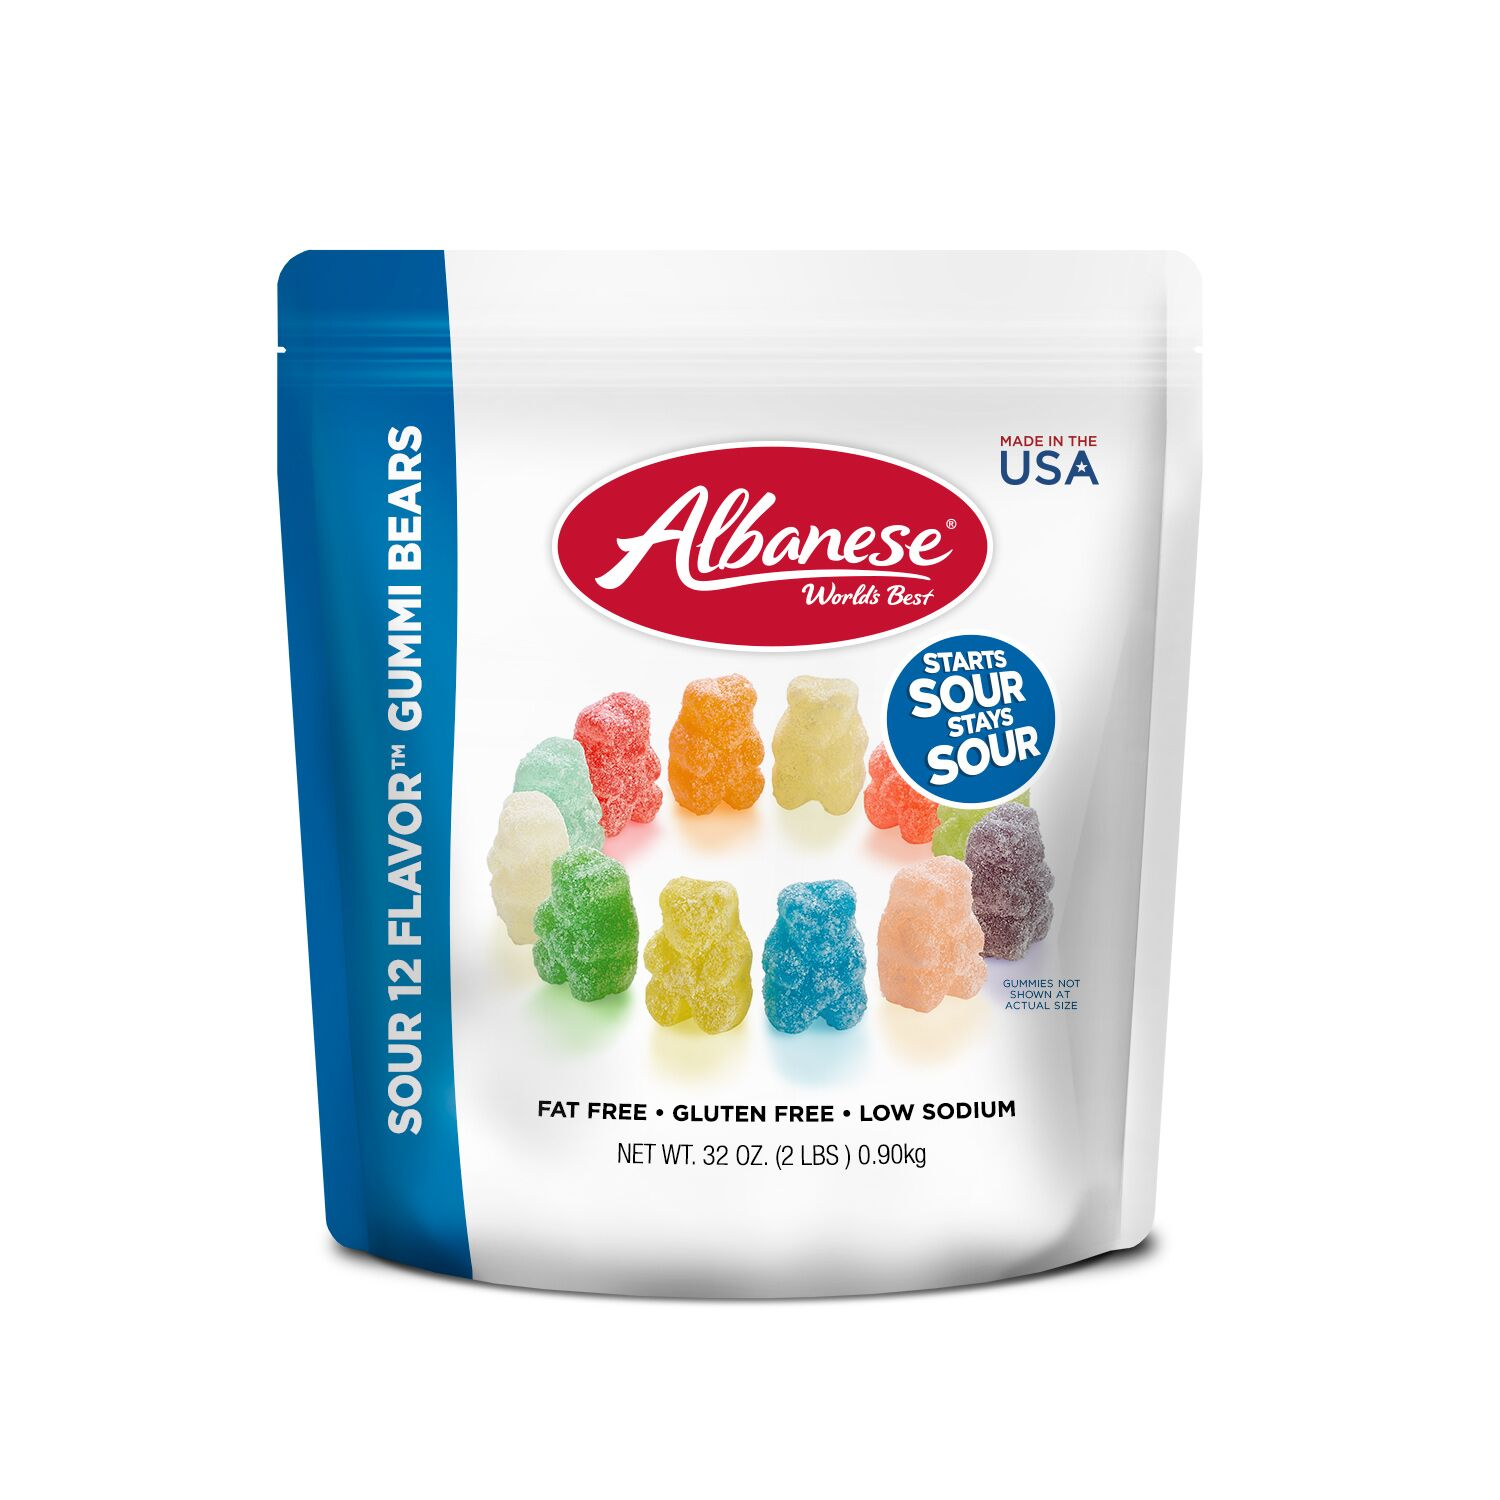 Albanese Fat-Free Gluten-Free Sour Assorted Flavors Gummi Bears, 32 Oz.